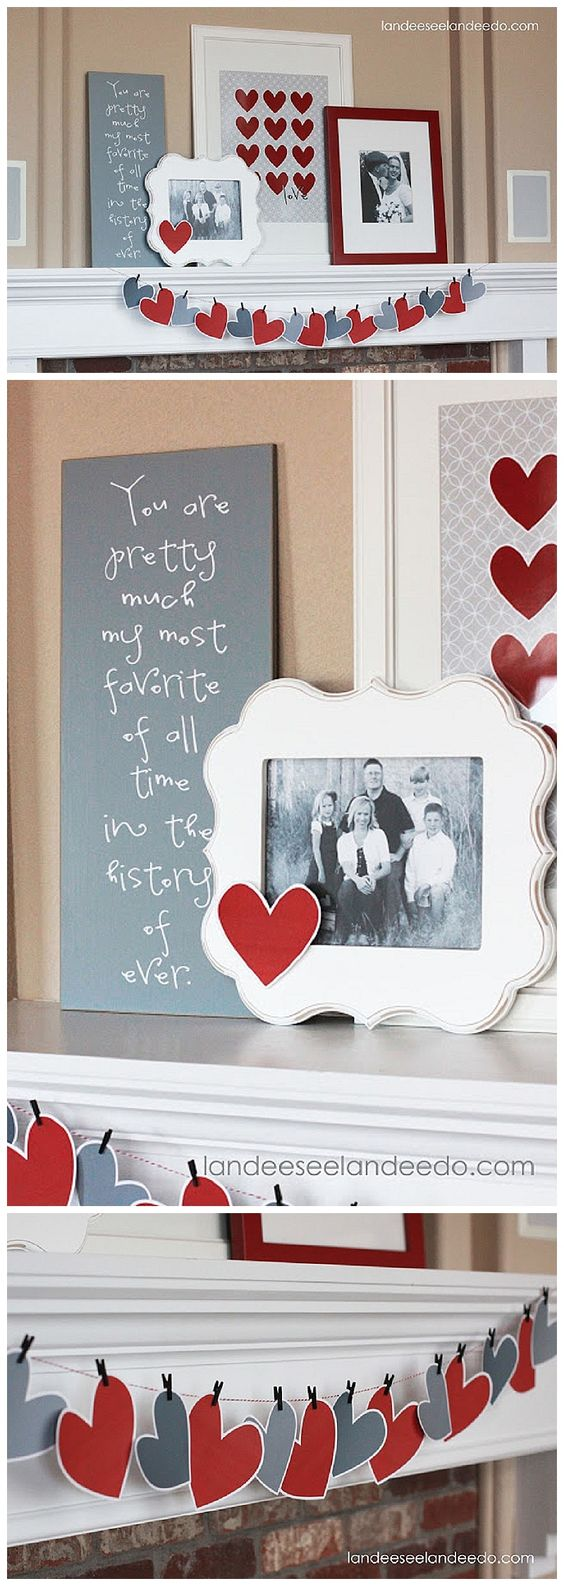 Valentine's Day Mantel Decor - DIY Garland and FREE PRINTABLE: